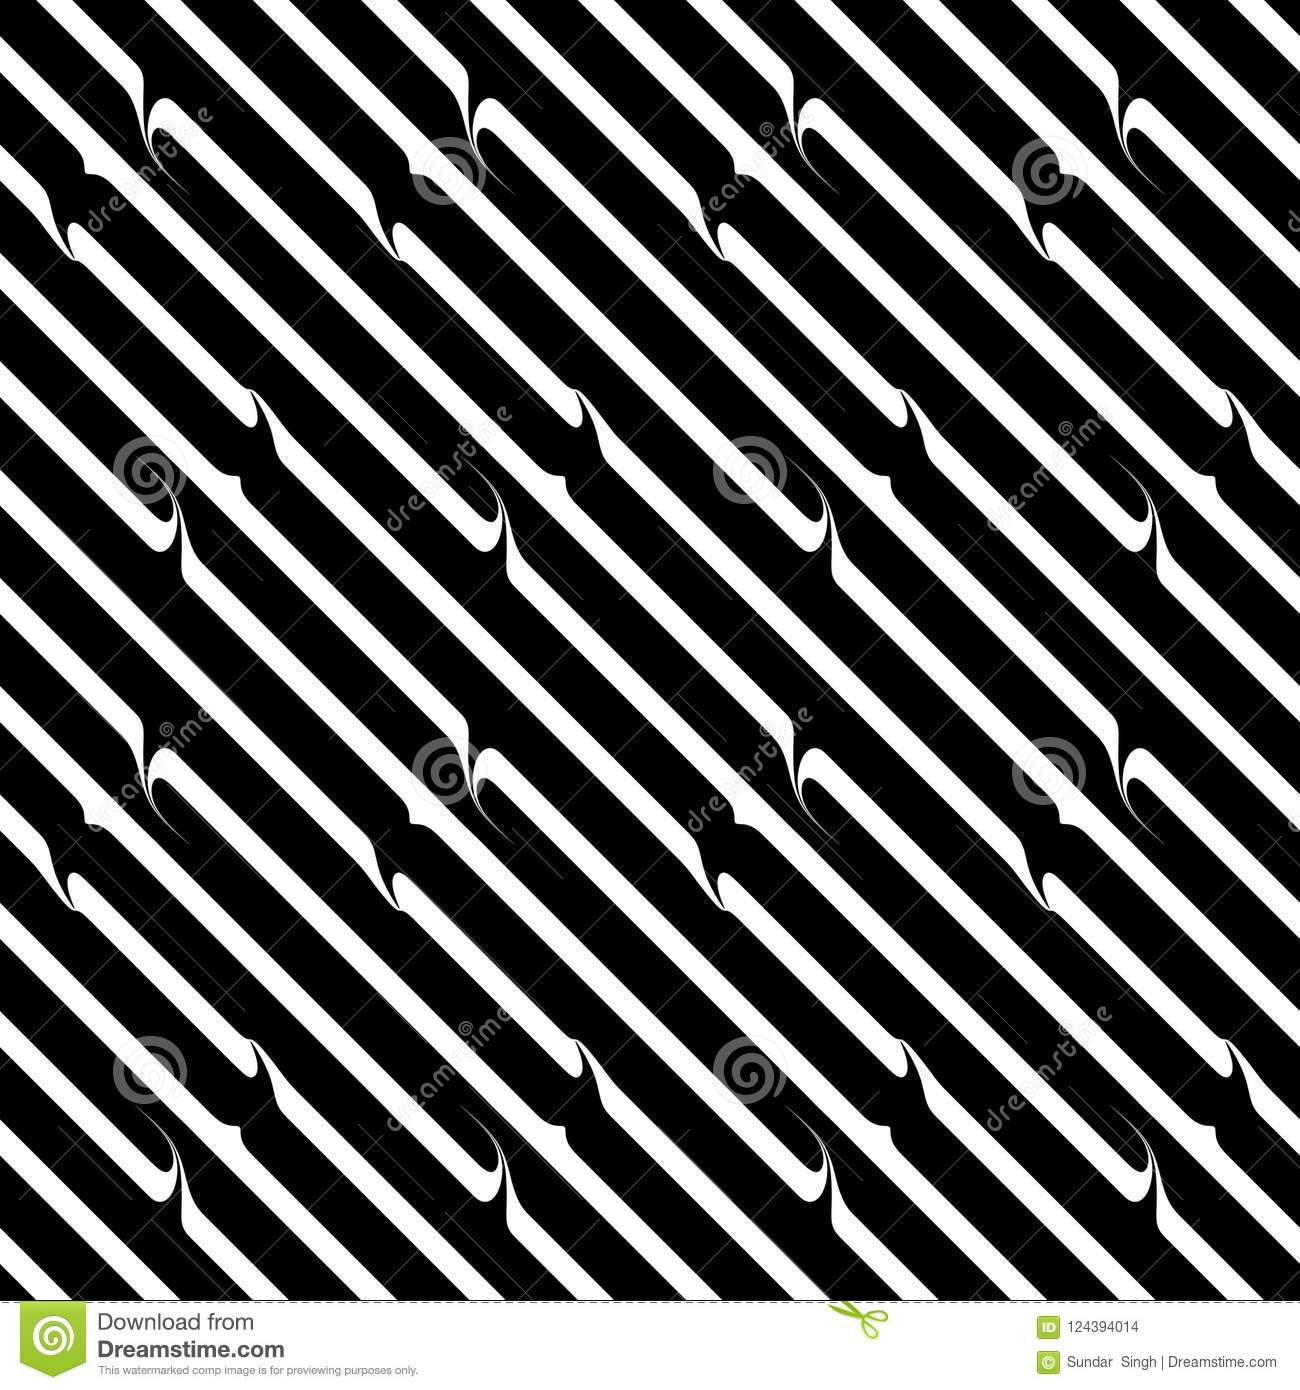 Vector Seamless Diagonal Lines Pattern Black And White Abstract Background Wallpaper Illustration